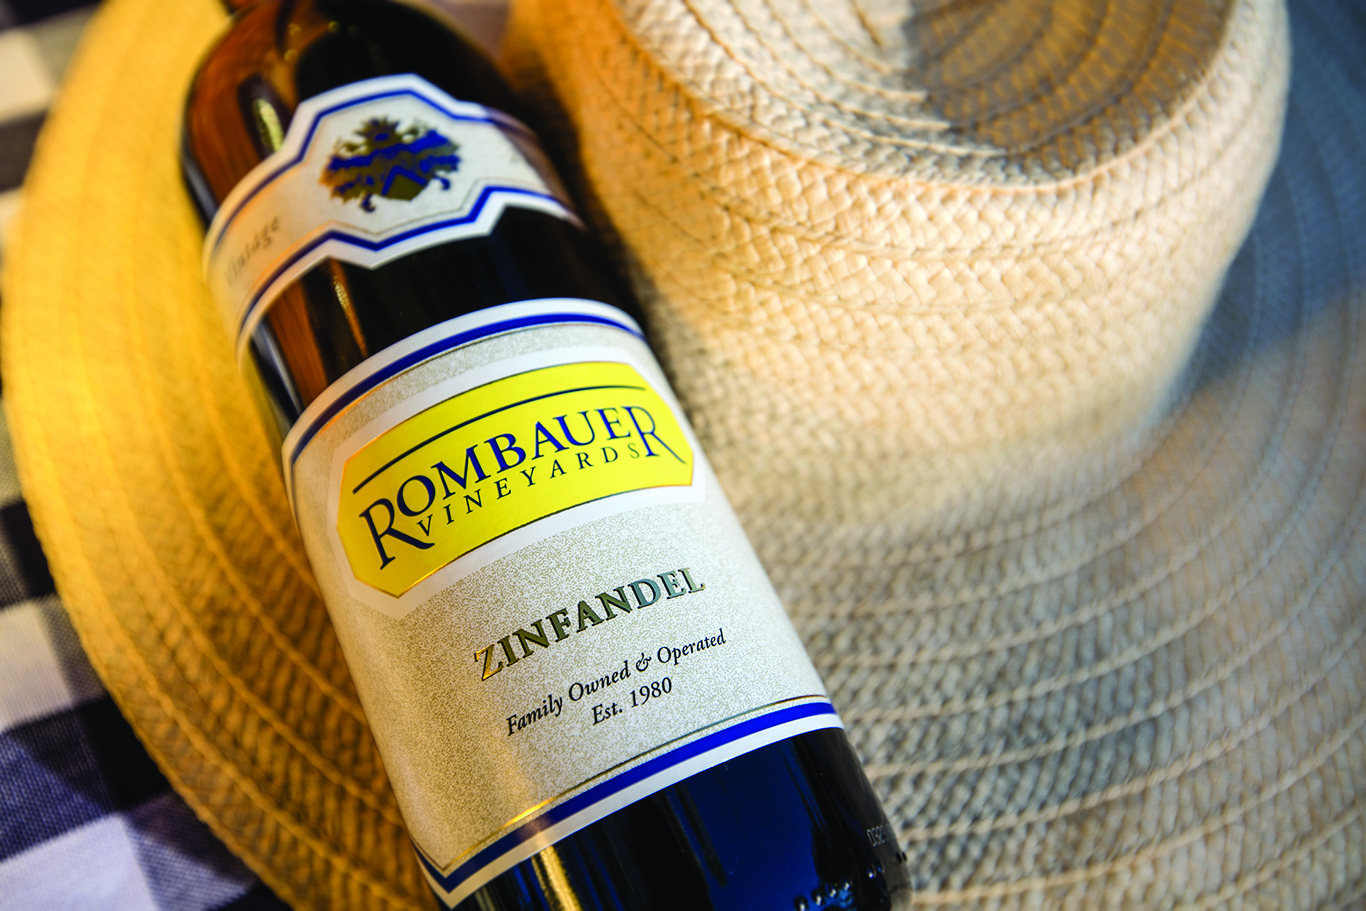 The 2014 Rombauer Zinfandel ($29.99) is a masterful, boundary-pushing Zin with its dark, purple-ruby hue.Concentrated flavors of cranberry, licorice and spice are enhanced by the generous 15.90 percent alcoholcontent.